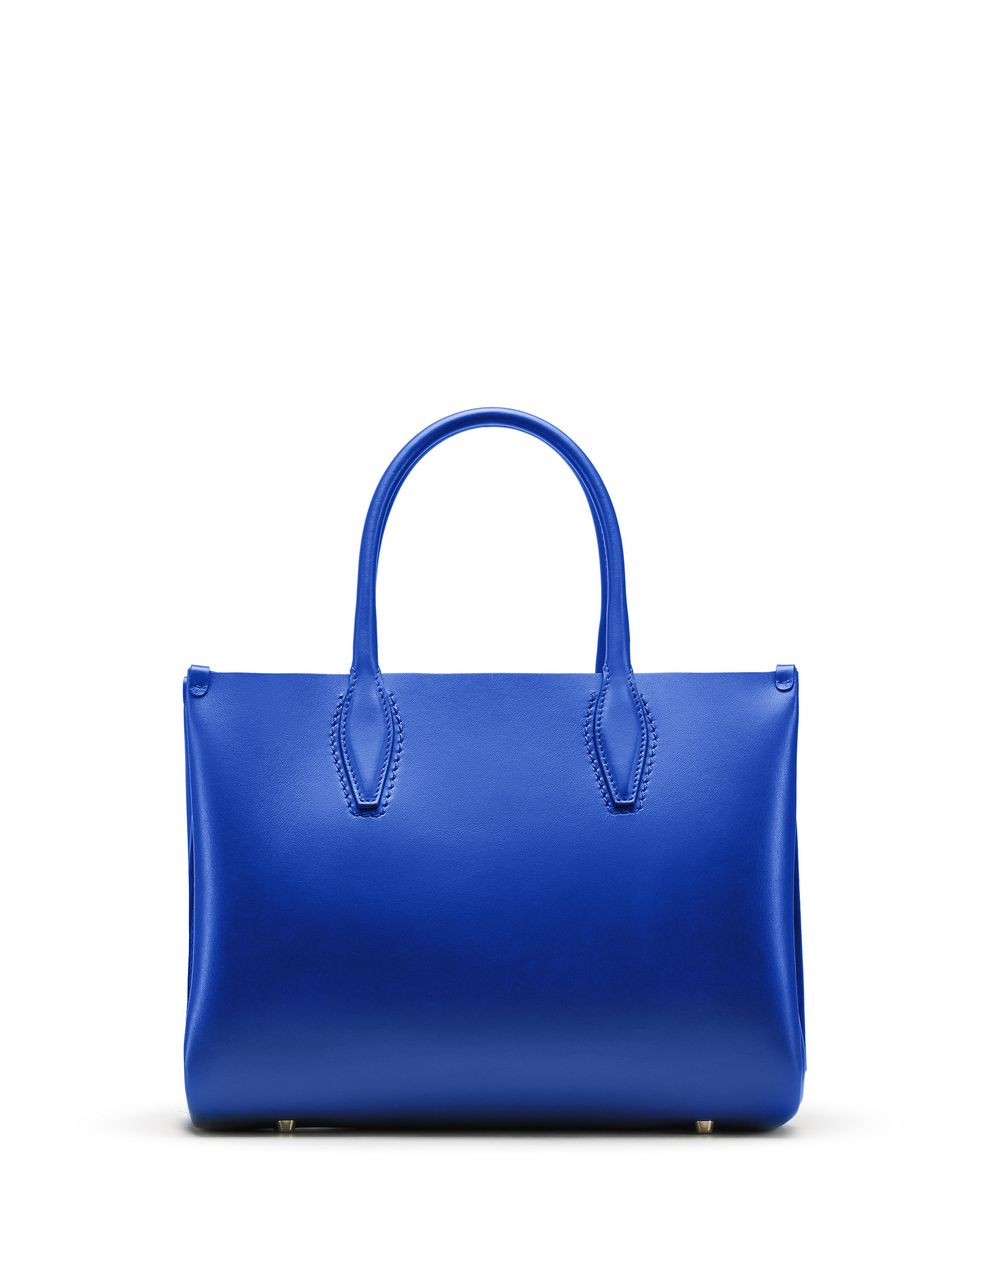 "MINI ELECTRIC BLUE ""JOURNÉE"" BAG - Lanvin"